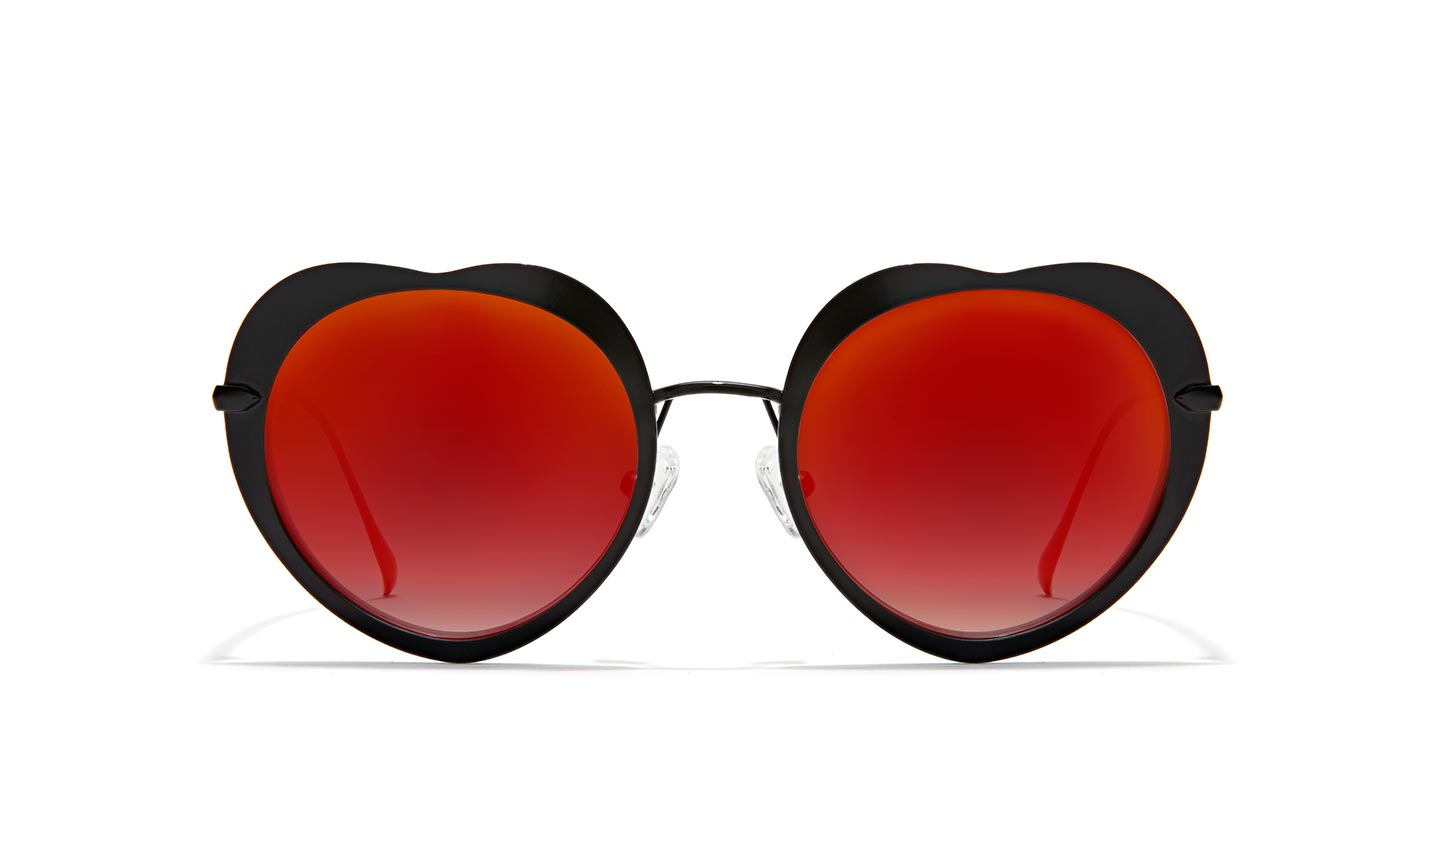 festival-heart-sunglasses-1128021